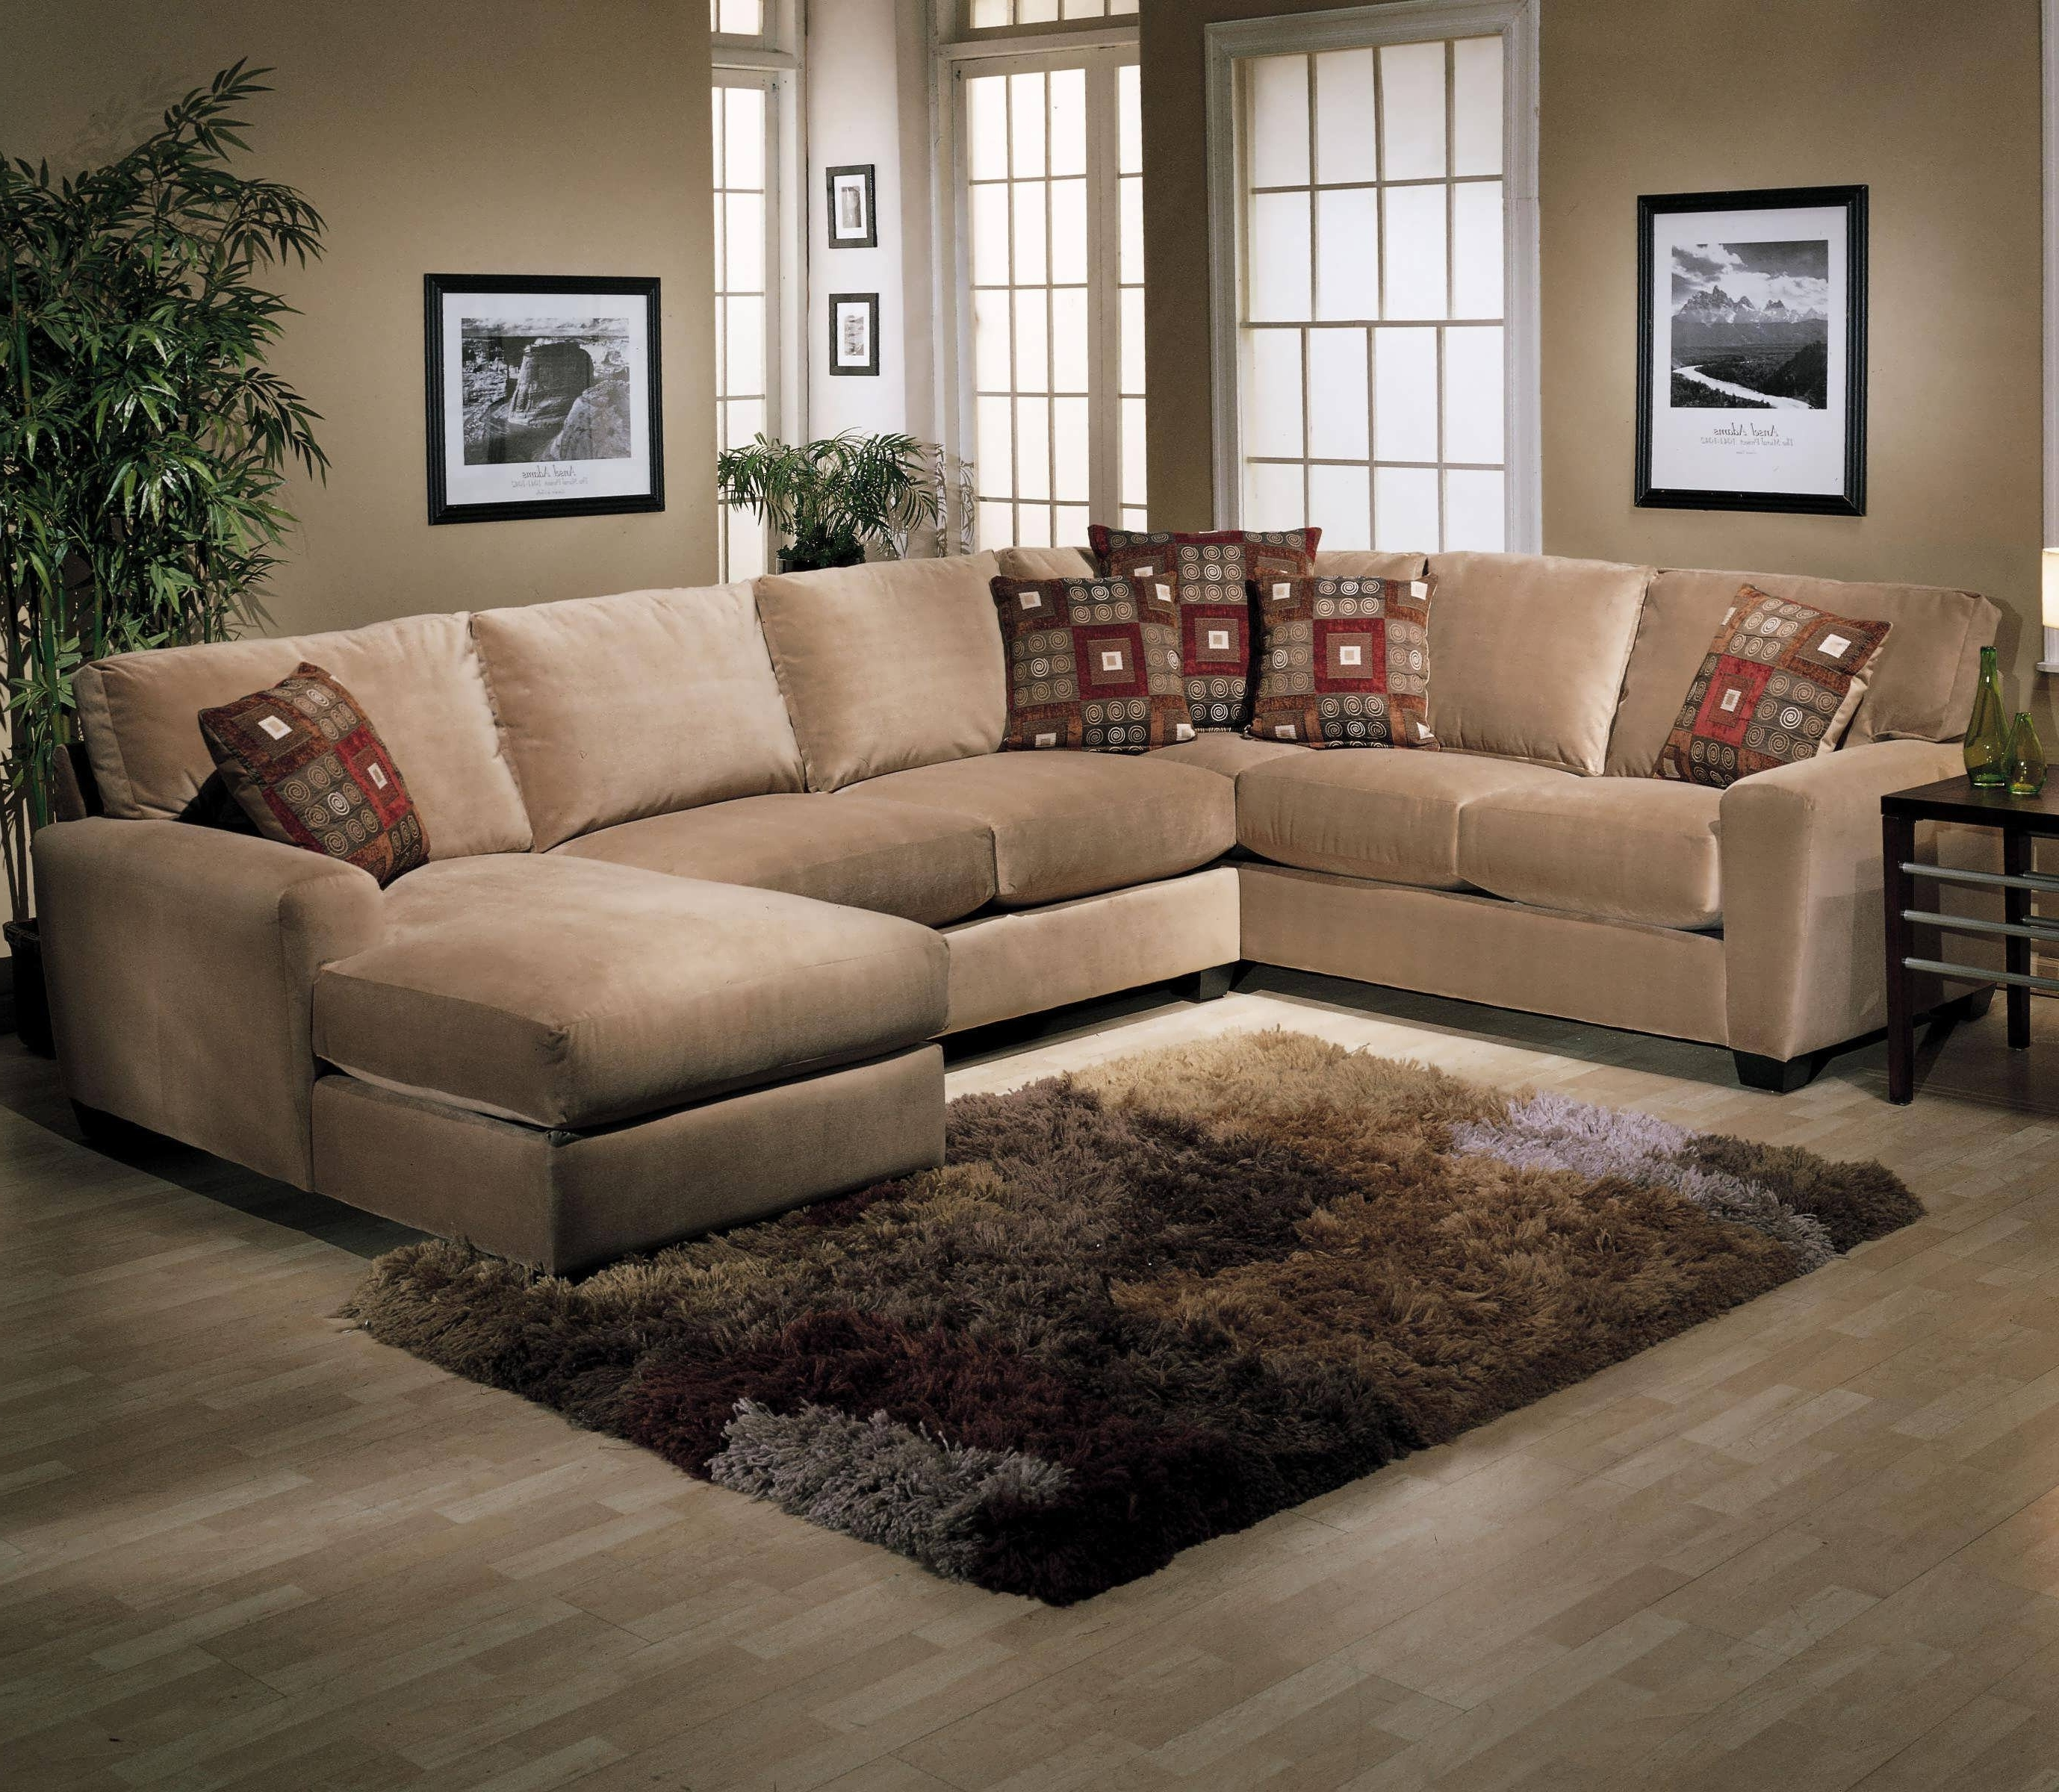 Popular Sofa : U Shaped Sofa Recliners Chairs Sofa Large U Shaped Sofa Regarding Reclining U Shaped Sectionals (View 6 of 15)